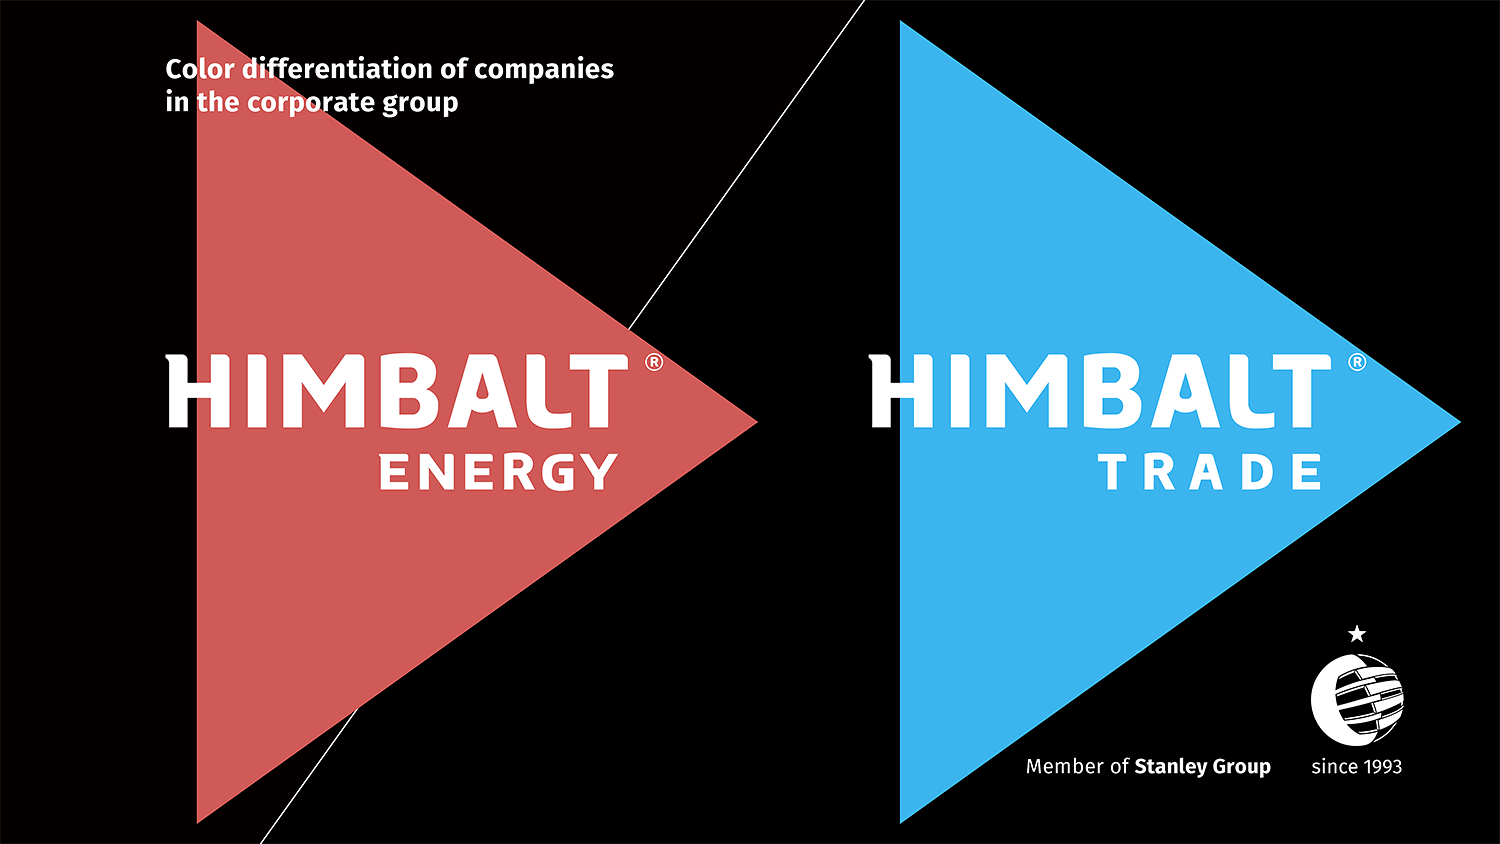 Color differentiation of Himbalt Energy and Himbalt Trade logos.